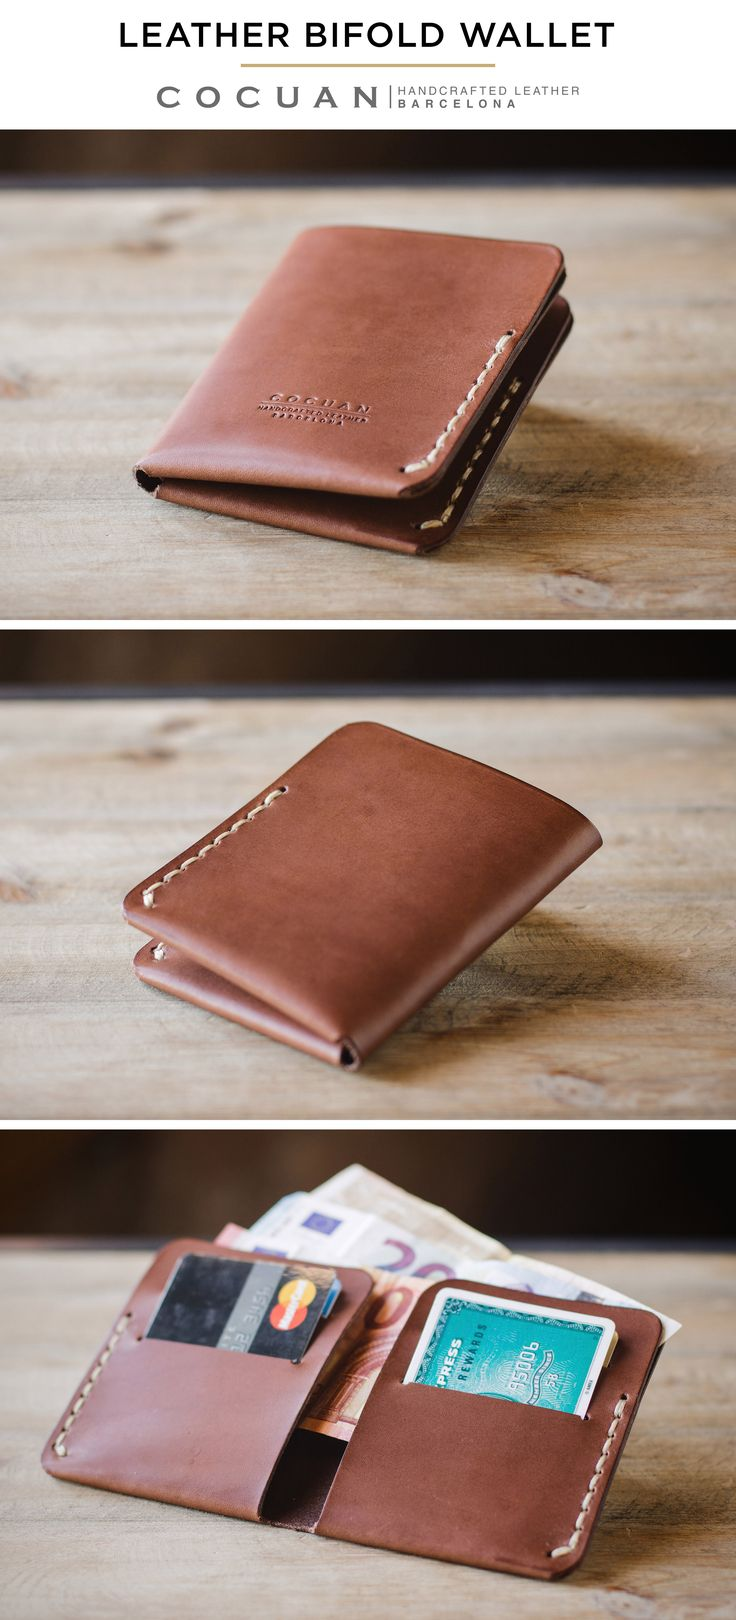 LEATHER BIFOLD WALLET www.cocuan.com                                                                                                                                                                                 More